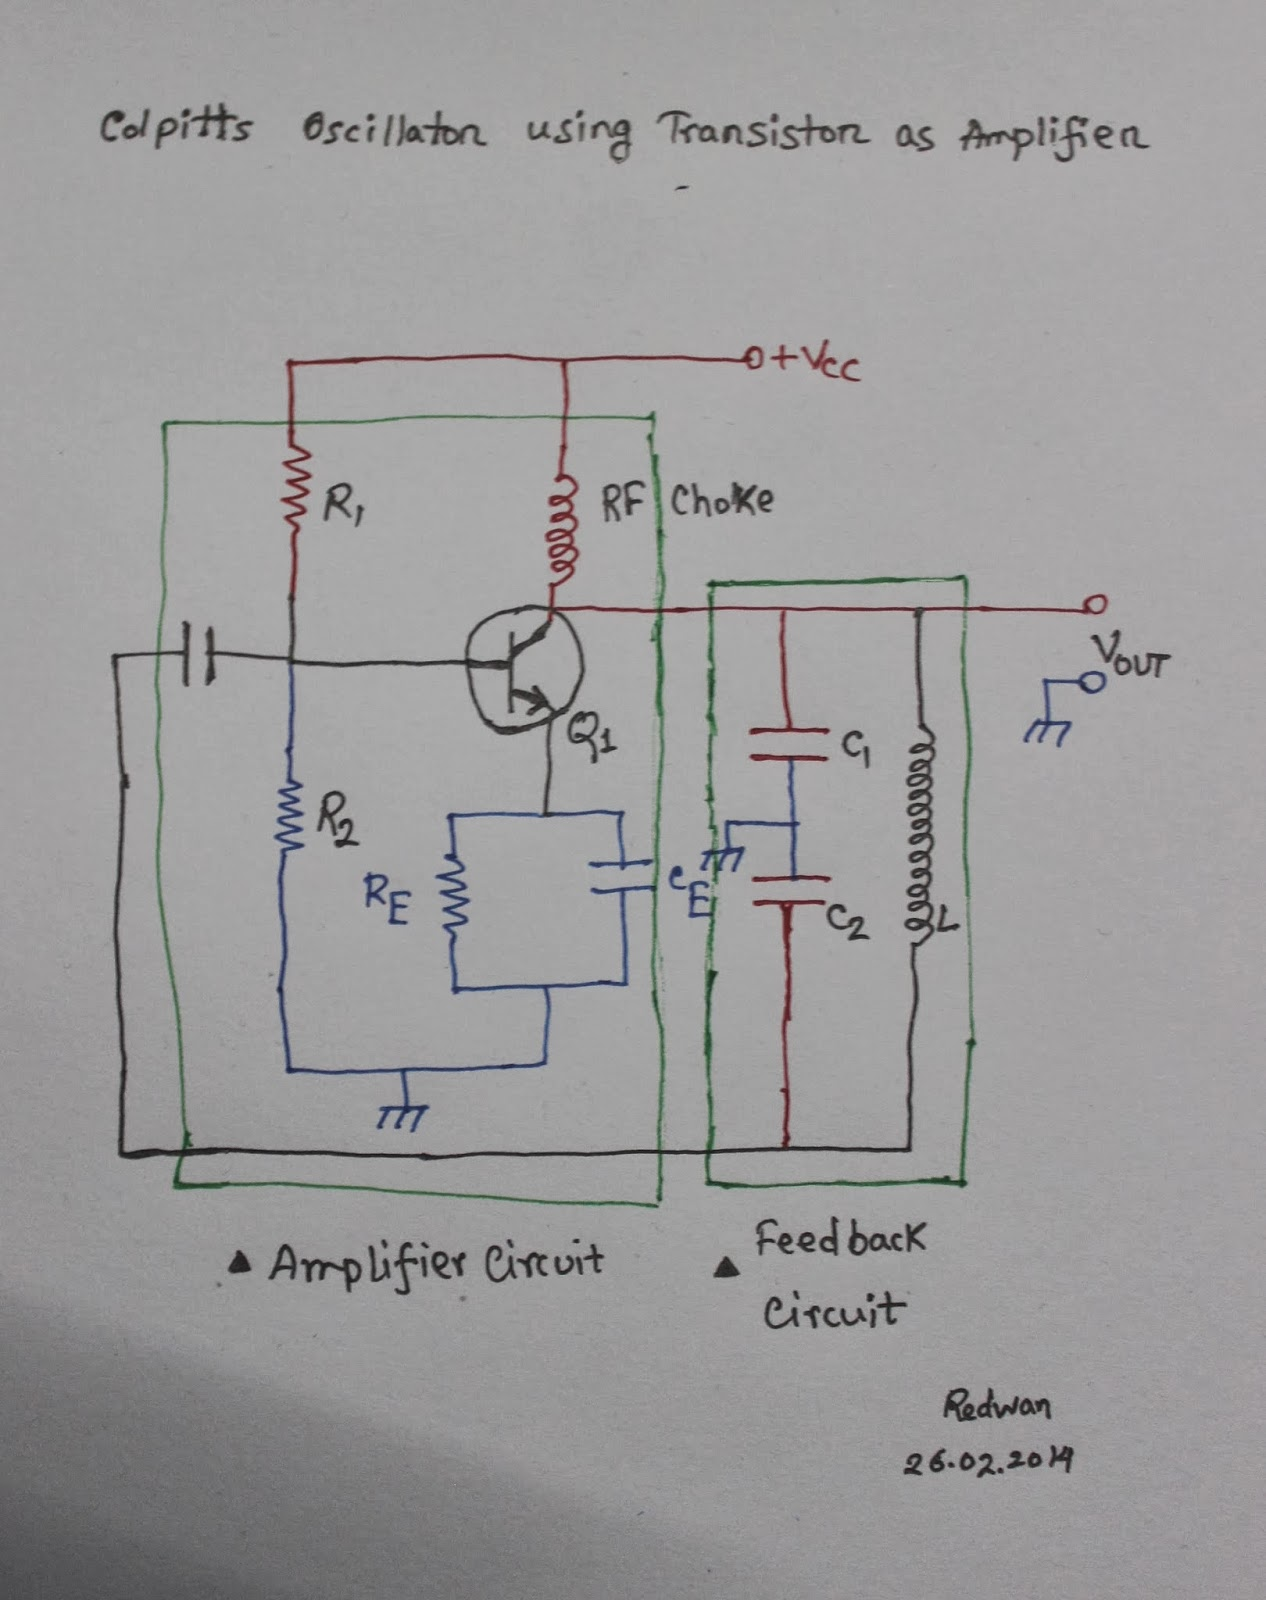 Scavengers Blog Colpitts Oscillator Circuit Diagram From The We Can See That Feedback Is Made Of Two Tapped Capacitors With An Common Inductor So Whole Tank Up C1